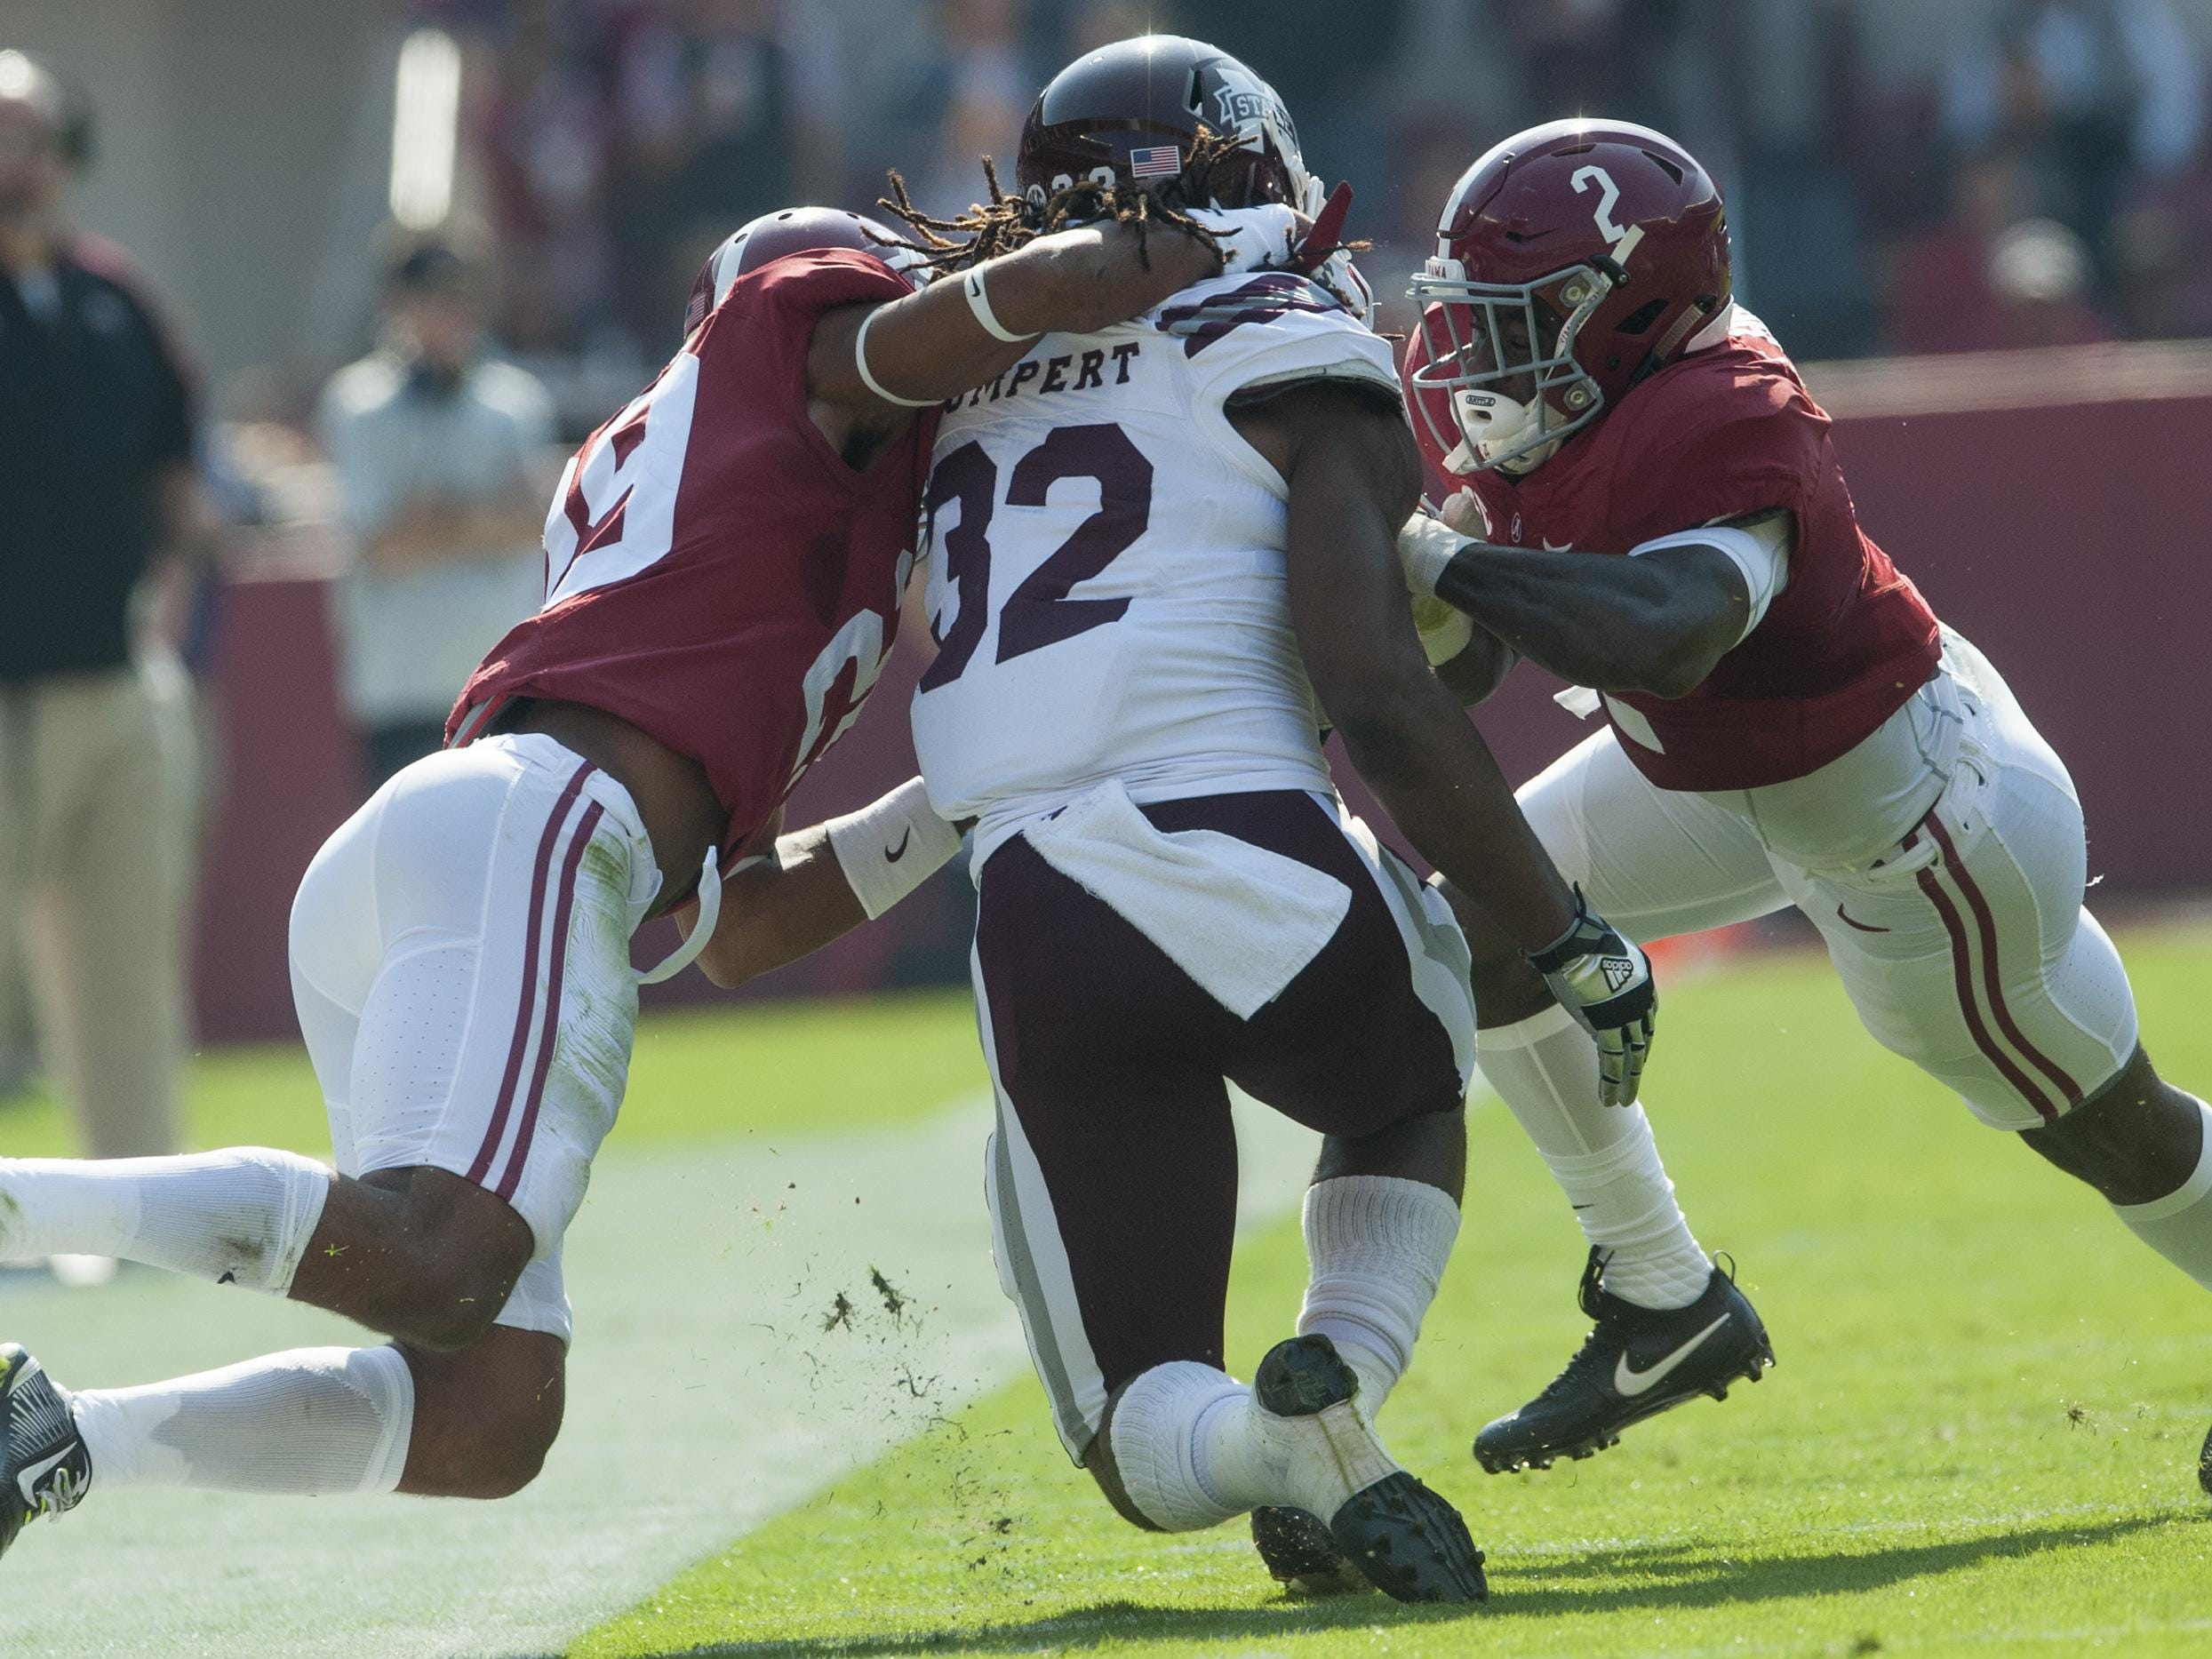 Alabama defensive back Minkah Fitzpatrick (29) and defensive back Tony Brown (2) stop Mississippi State running back Ashton Shumpert (32) at Bryant Denny Stadium in Tuscaloosa, Ala. on Saturday November 12, 2016. (Mickey Welsh / Montgomery Advertiser)